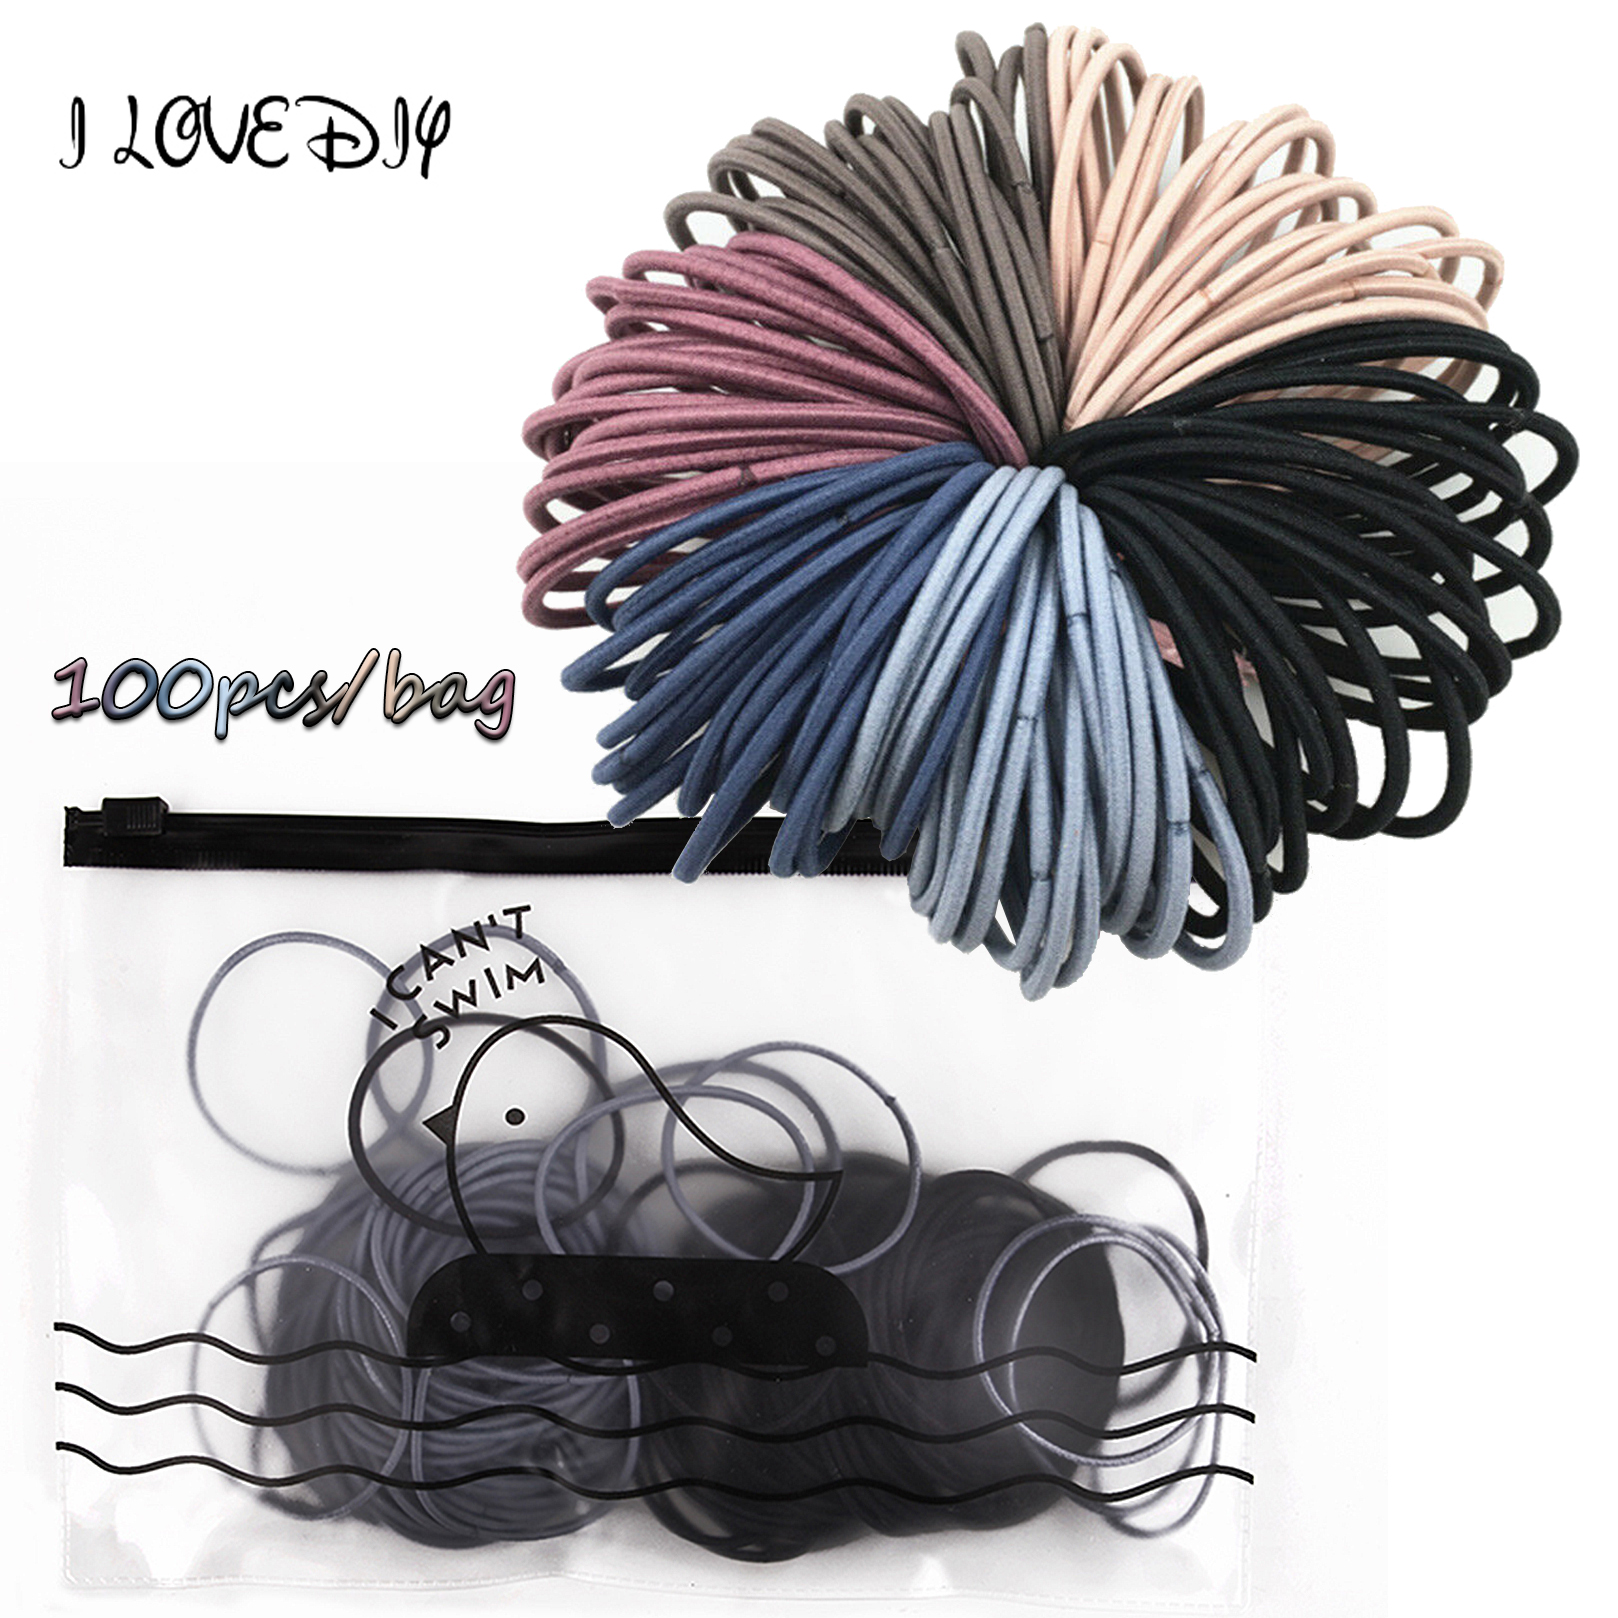 100pcs With Bag 4.5cm High Elastic Rubber Bands Basic Hair Bands Scrunchies Hair Ties Gum Women Girls Baby Ponytail Holder Rings